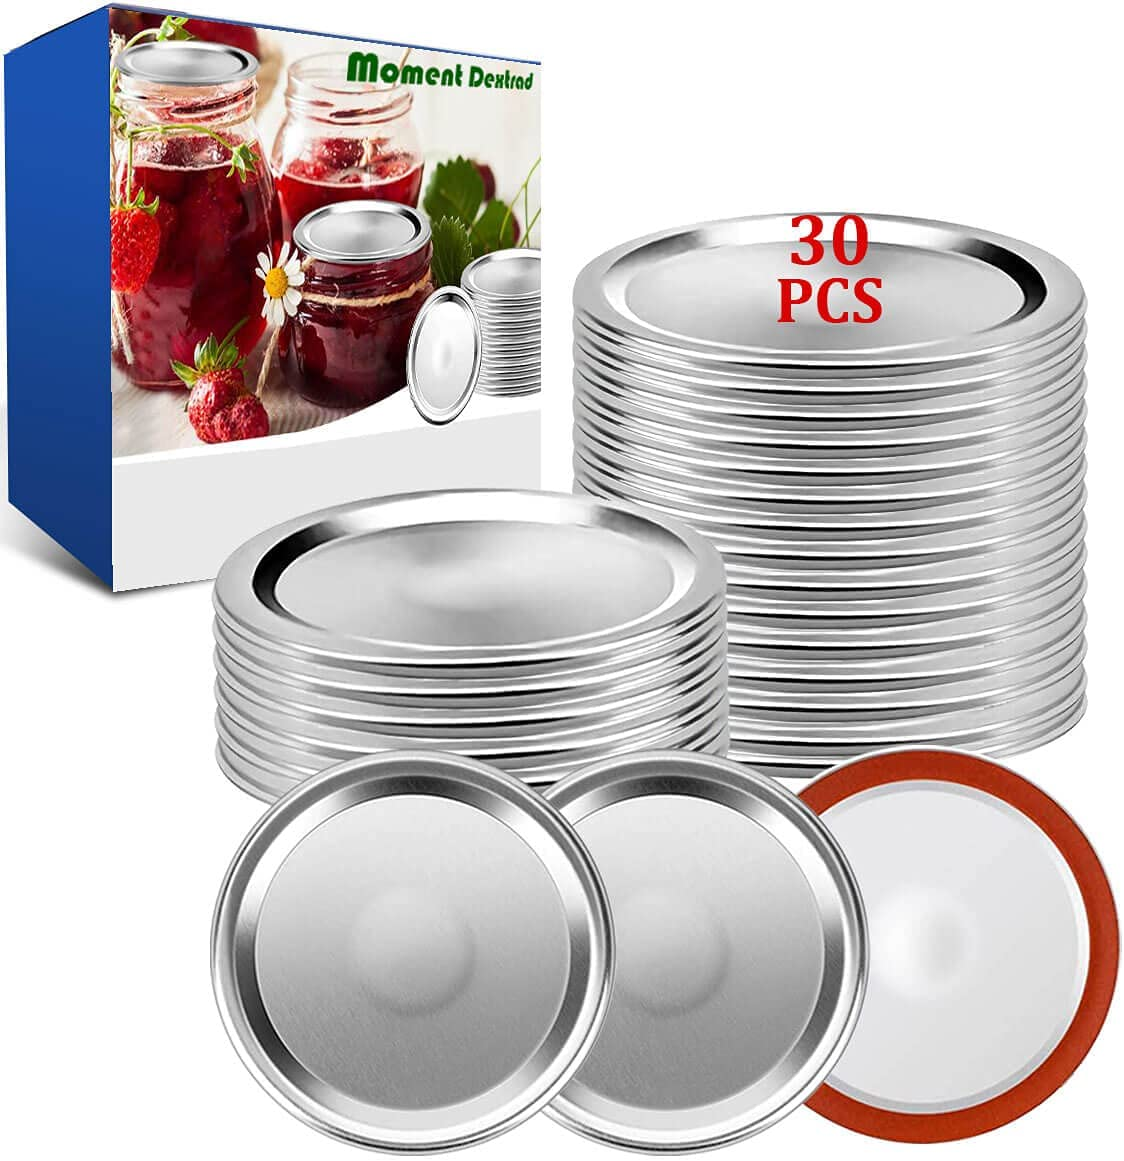 Canning Lids,Mason Jar Lids 30 PCS,Regular Mouth Canning Lids,Premium Metal Lid Split-Type with Airtight Seal and Leak proof,Use for Home Canning & Food Storage (Silver, 30 Count)